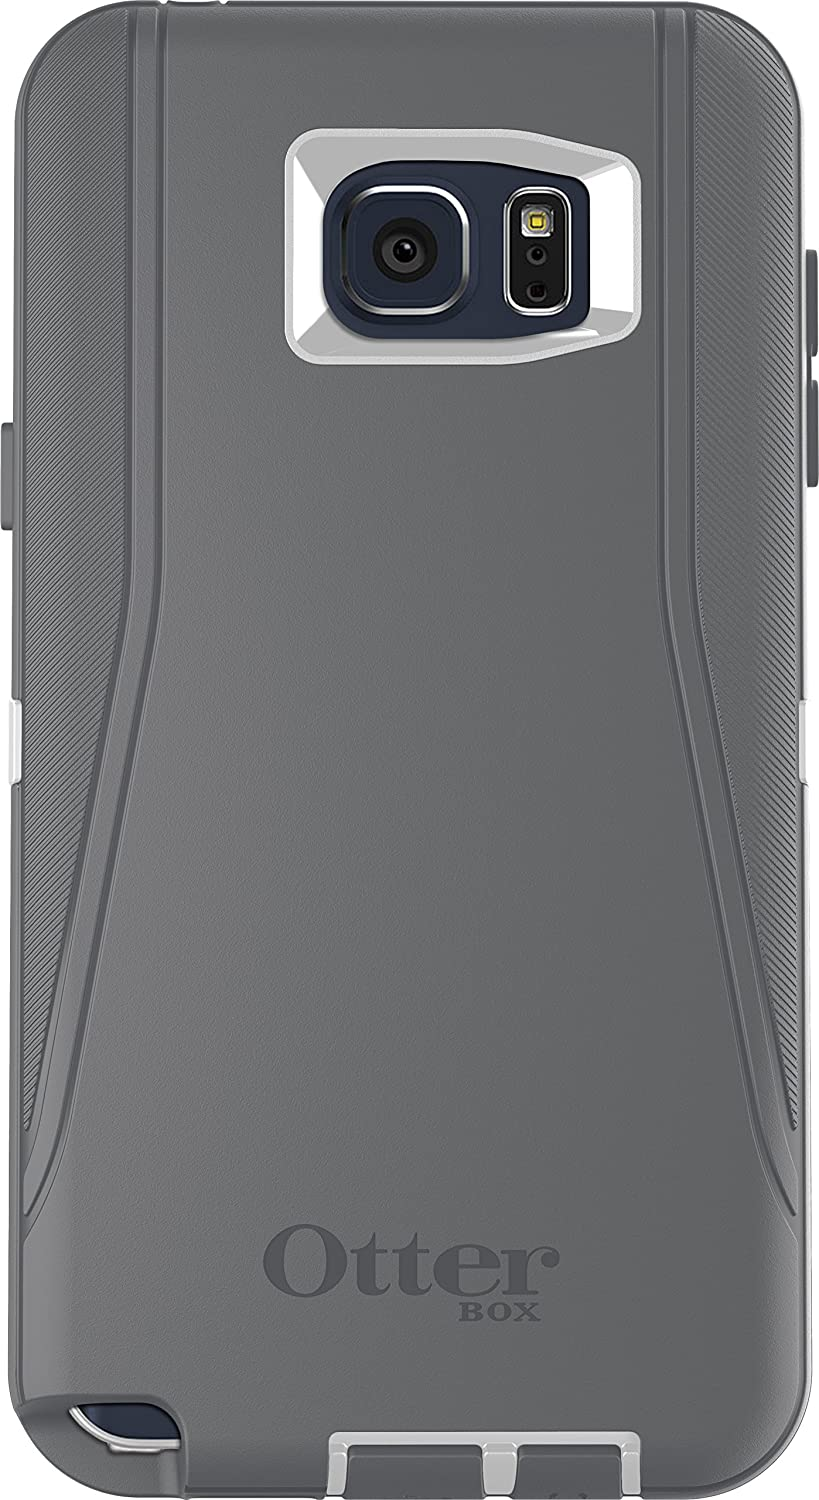 cheap for discount a480a f5013 OtterBox DEFENDER Cell Phone Case for Samsung Galaxy Note5 - Retail  Packaging - GLACIER (WHITE/GUNMETAL GREY)